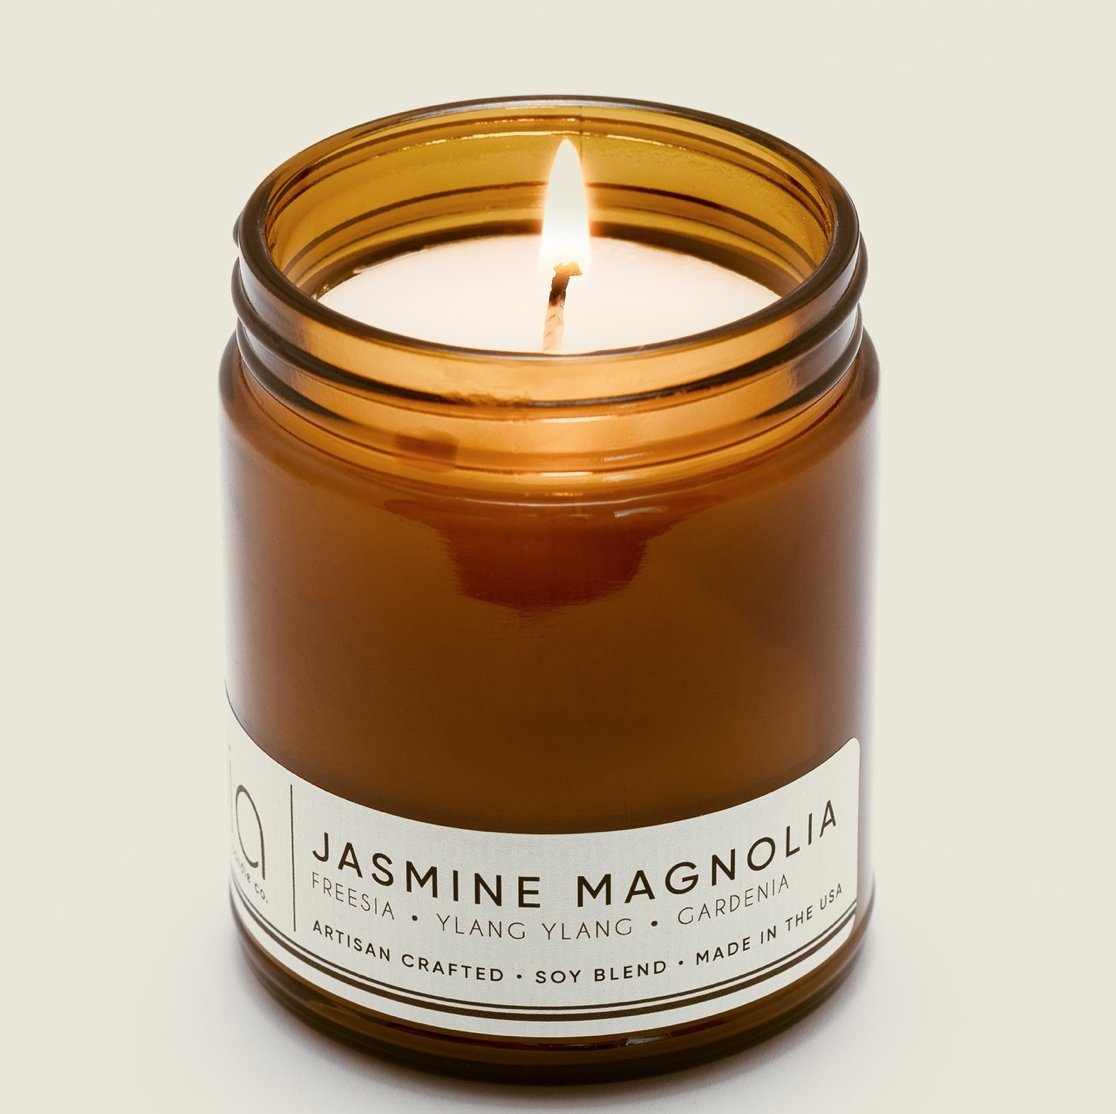 JASMINE MAGNOLIA Classic Candle 50hour Burn - Molly's! A Chic and Unique Boutique